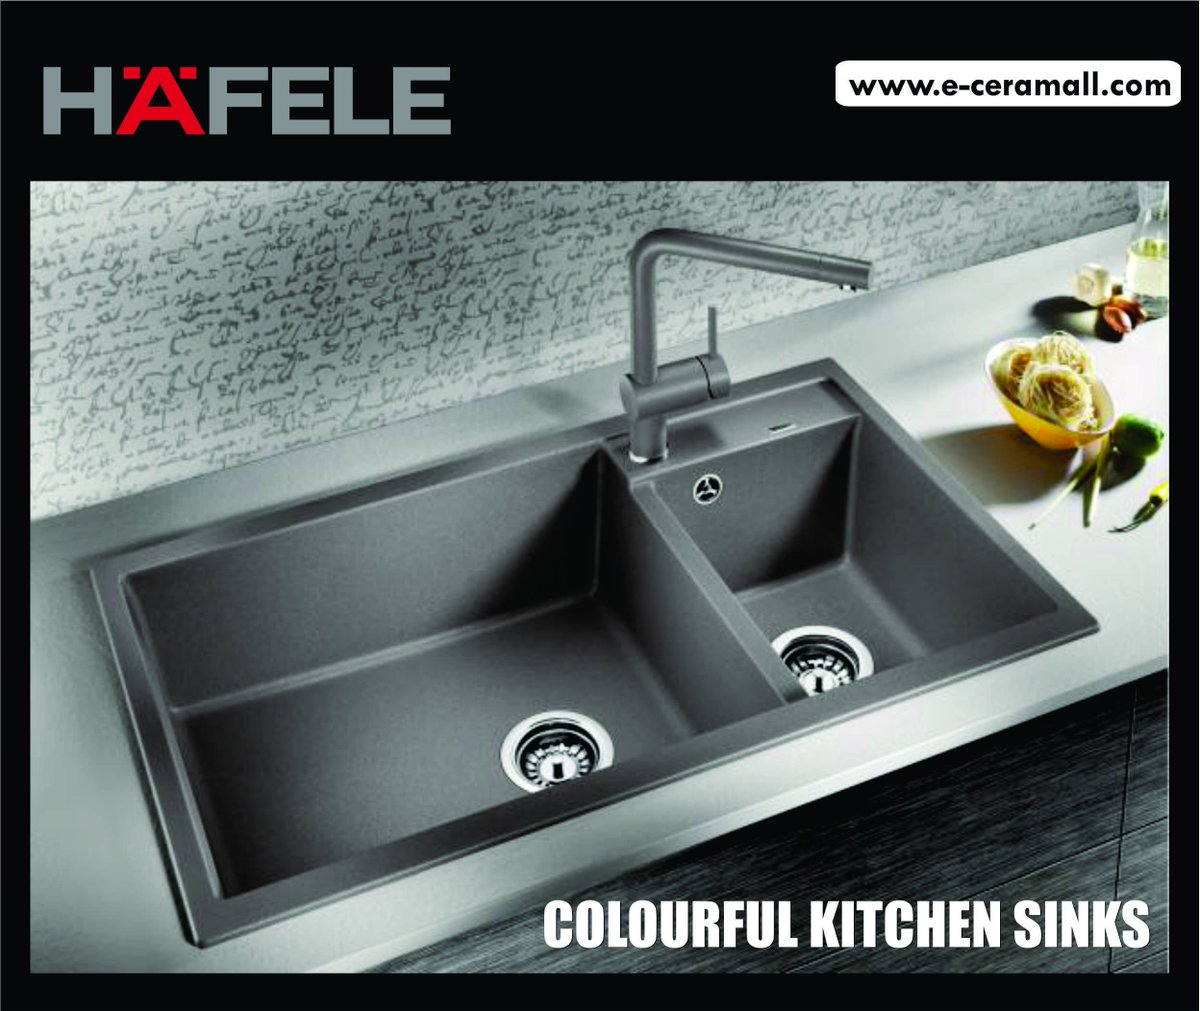 Eceramall On Twitter Colourful Kitchen Sinks For Ages The Kitchen Sink Has Been Silver And Ss Material Kitchen Sinks Carysil Hafele Blanco Franke Https T Co 2zjh3qhljf